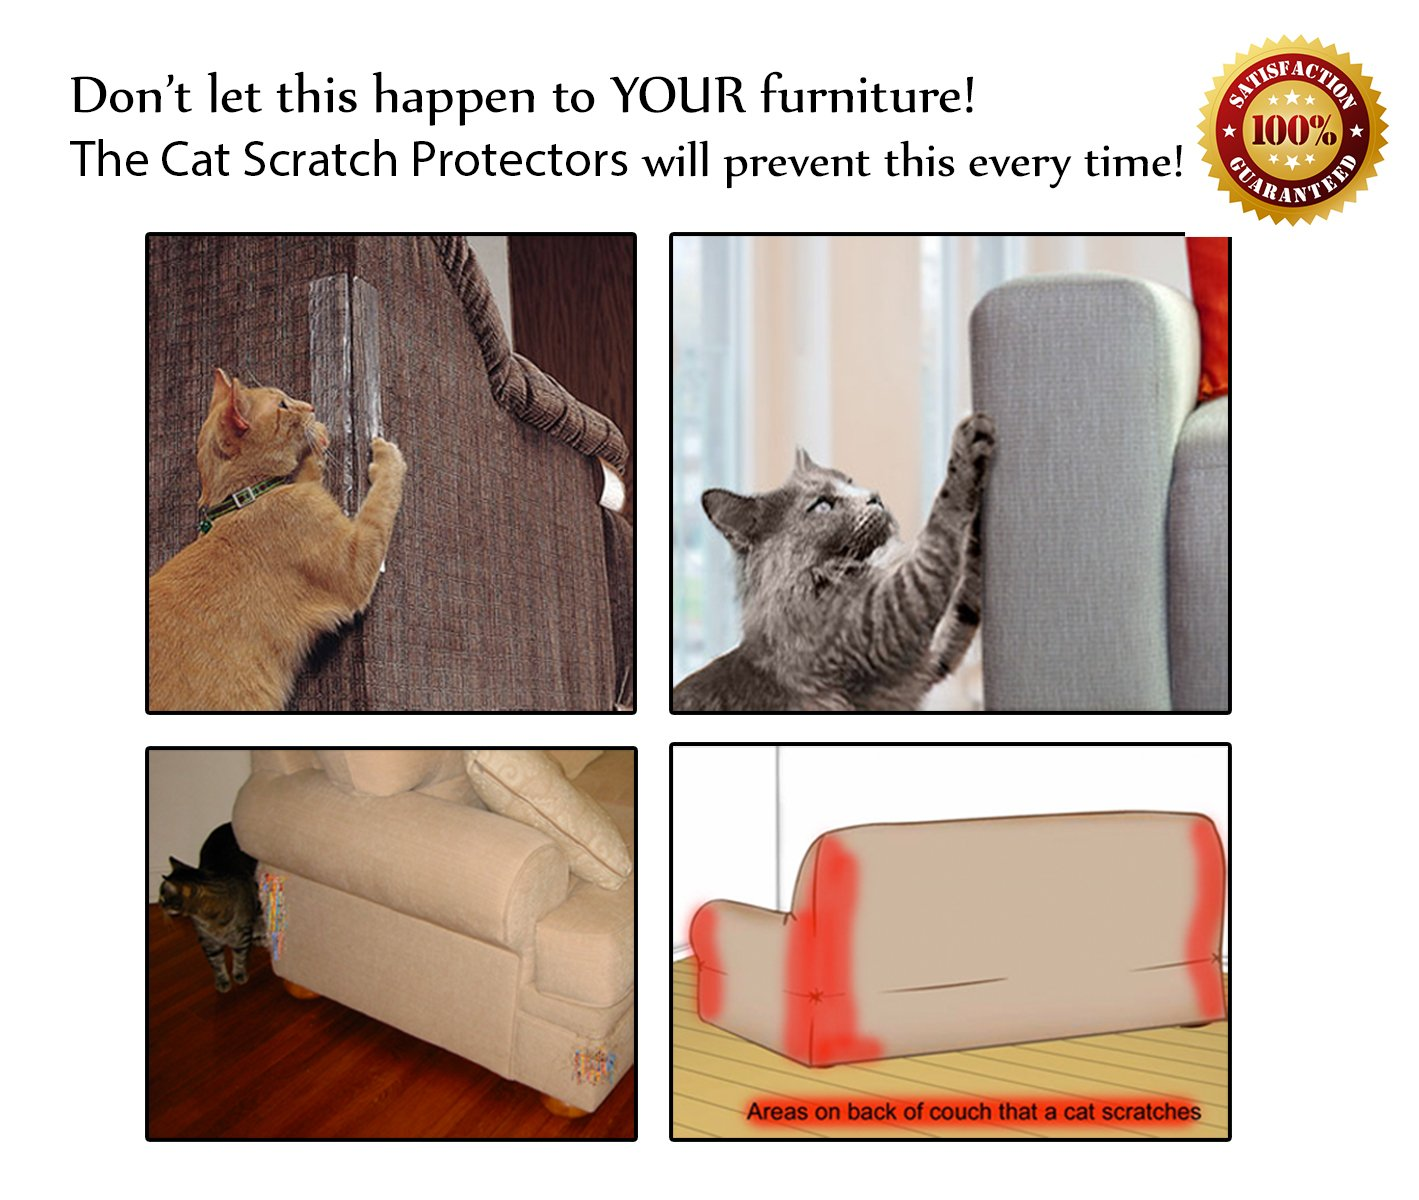 Cat Clawing Leather Furniture #19 - Amazon.com: Cat Scratch Protection Any Couch, Sofa Or Chair, Works For  Leather And Upholstered Furniture, 2 Scratching Guards Included, Scratching  Deterrent ...